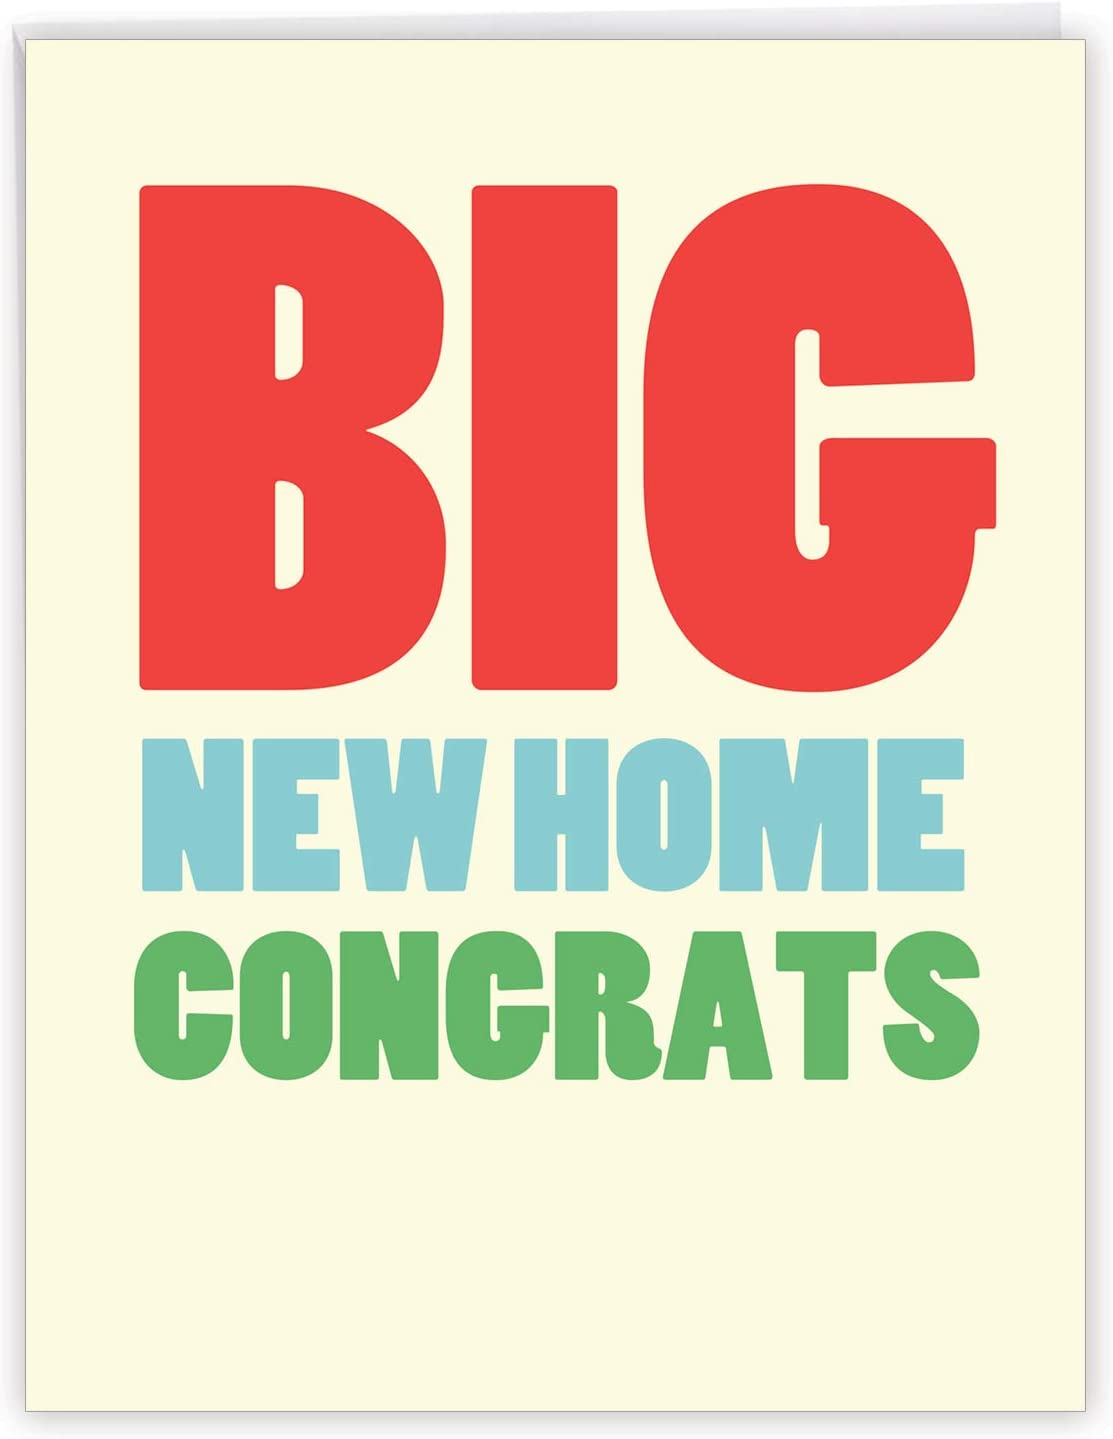 Amazon Com Big New Home Congratulations Greeting Card With Envelope 8 5 X 11 Inch Congrats On You New Home House Congrats And Celebration Homeowner Stationery J2728cgg Office Products